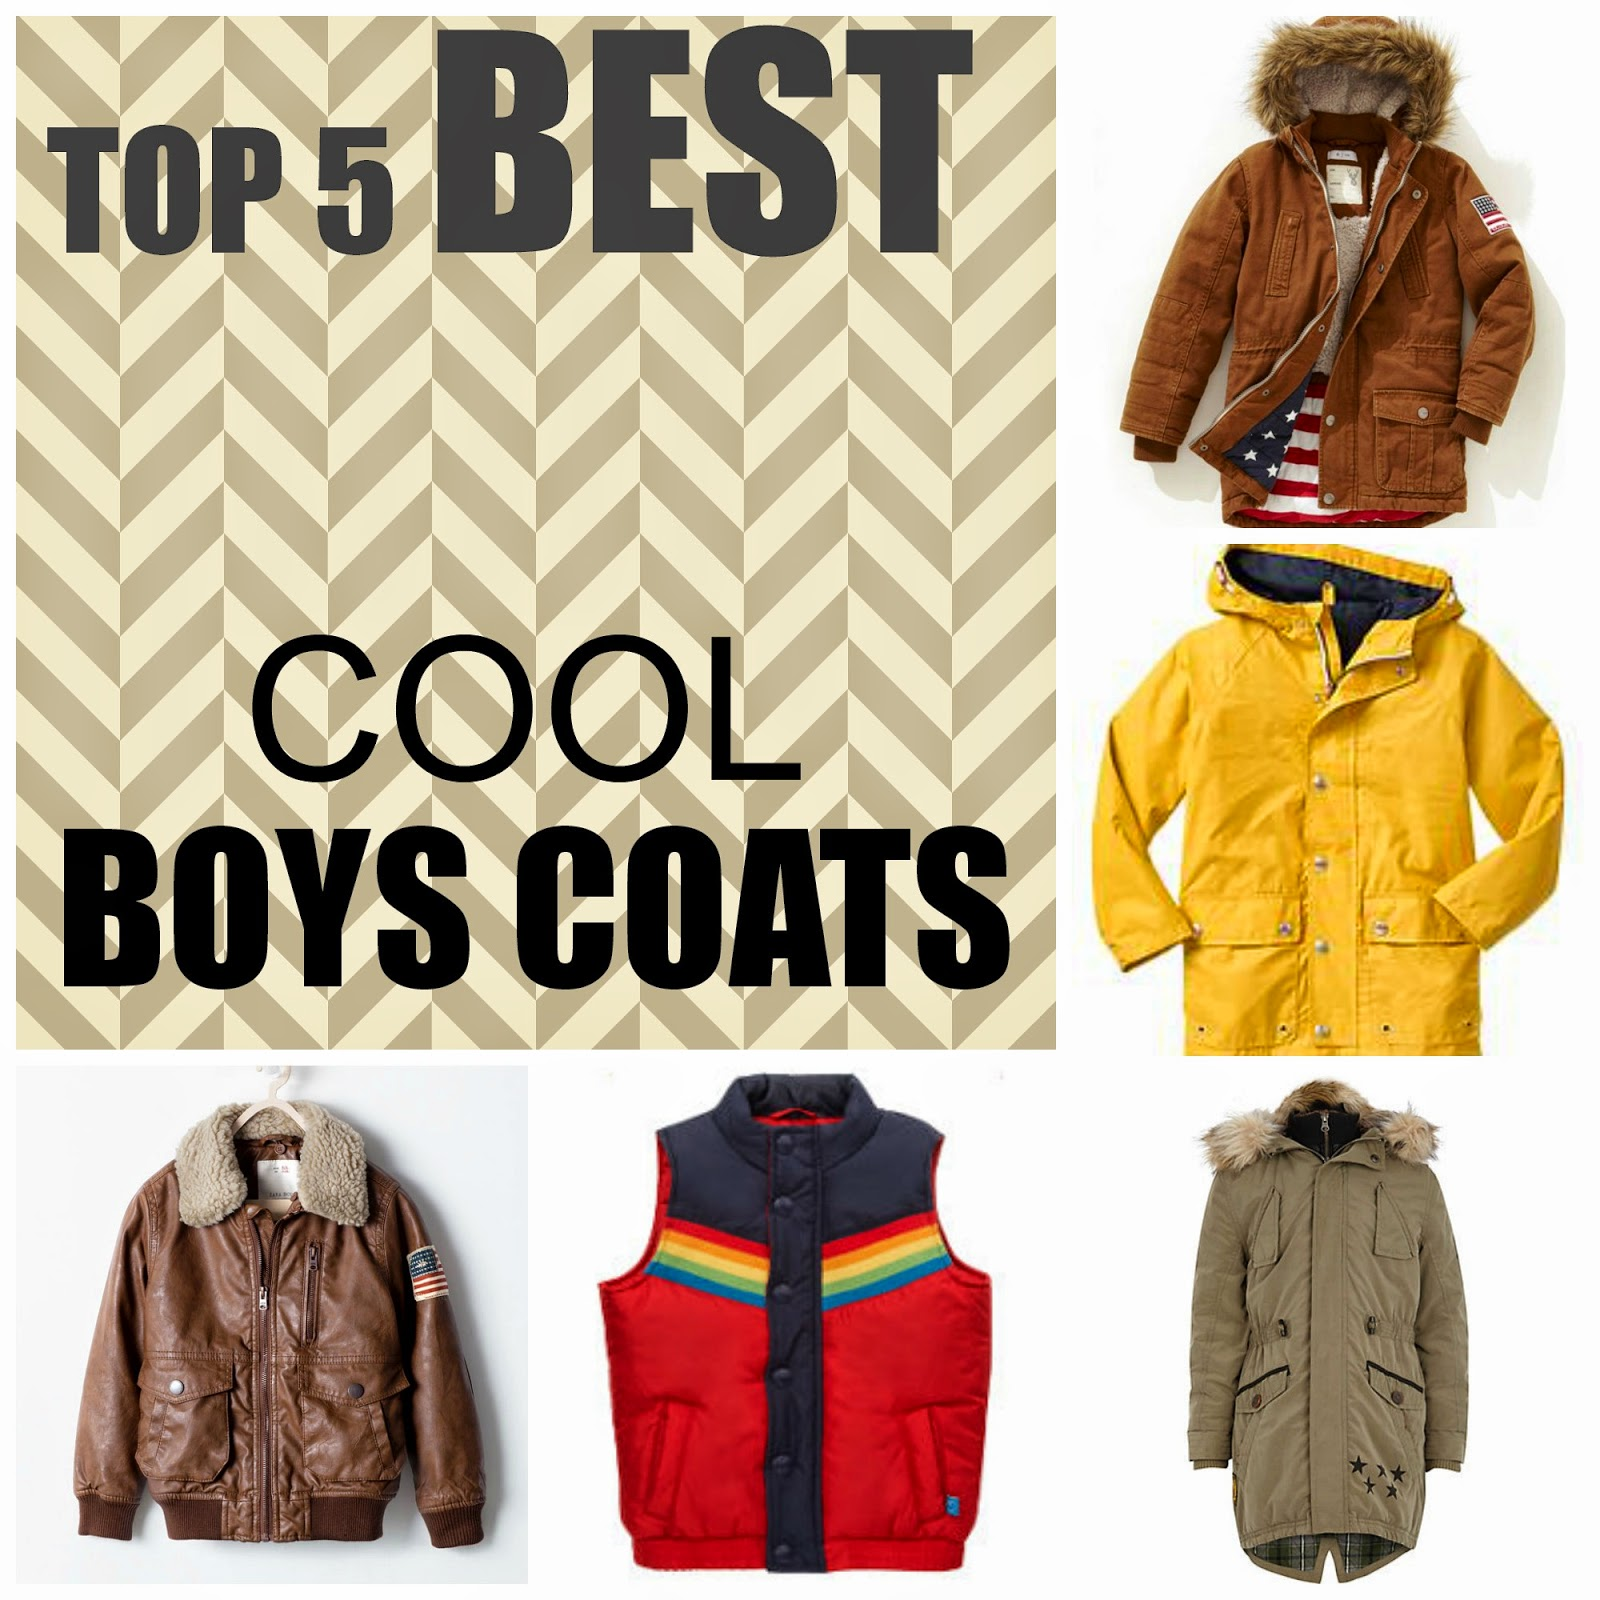 Best boys coats